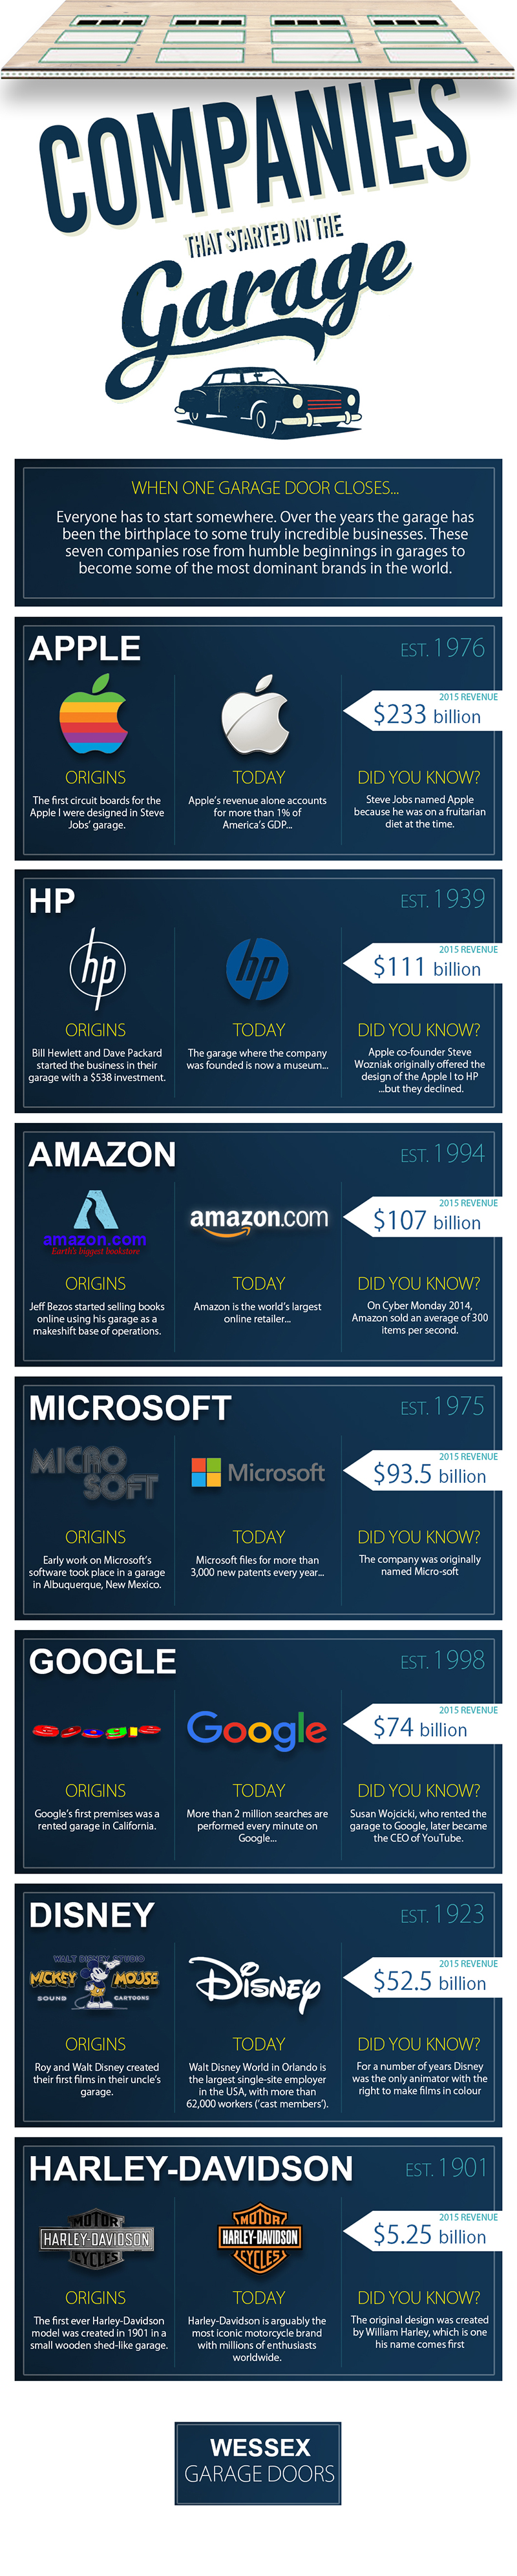 wessex-infographic-companies-started-in-garages-web